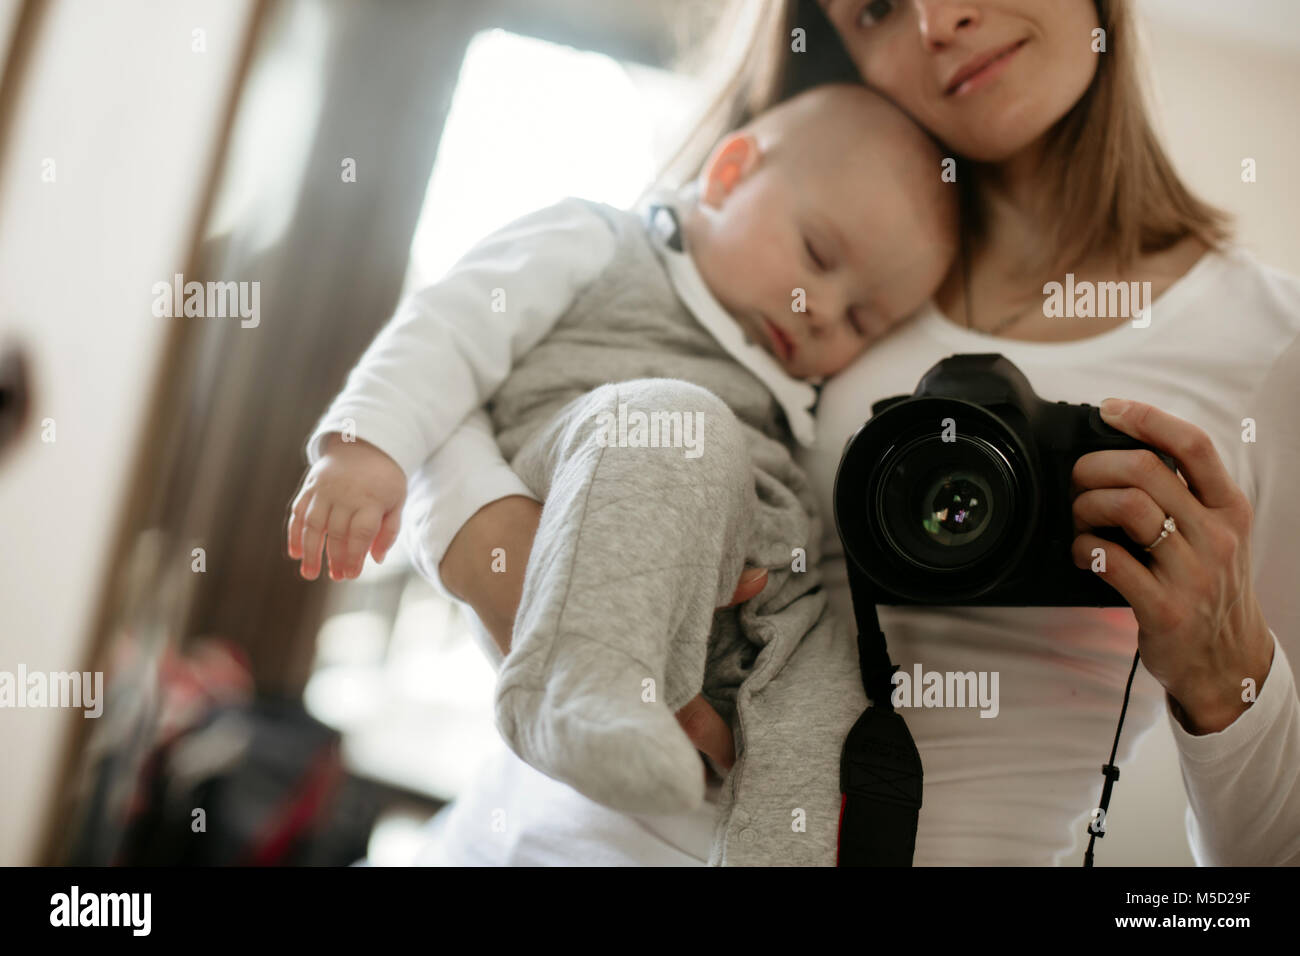 Young mother, holding tenderly her sleeping toddler boy, taking picture through a mirror, sunny living room - Stock Image